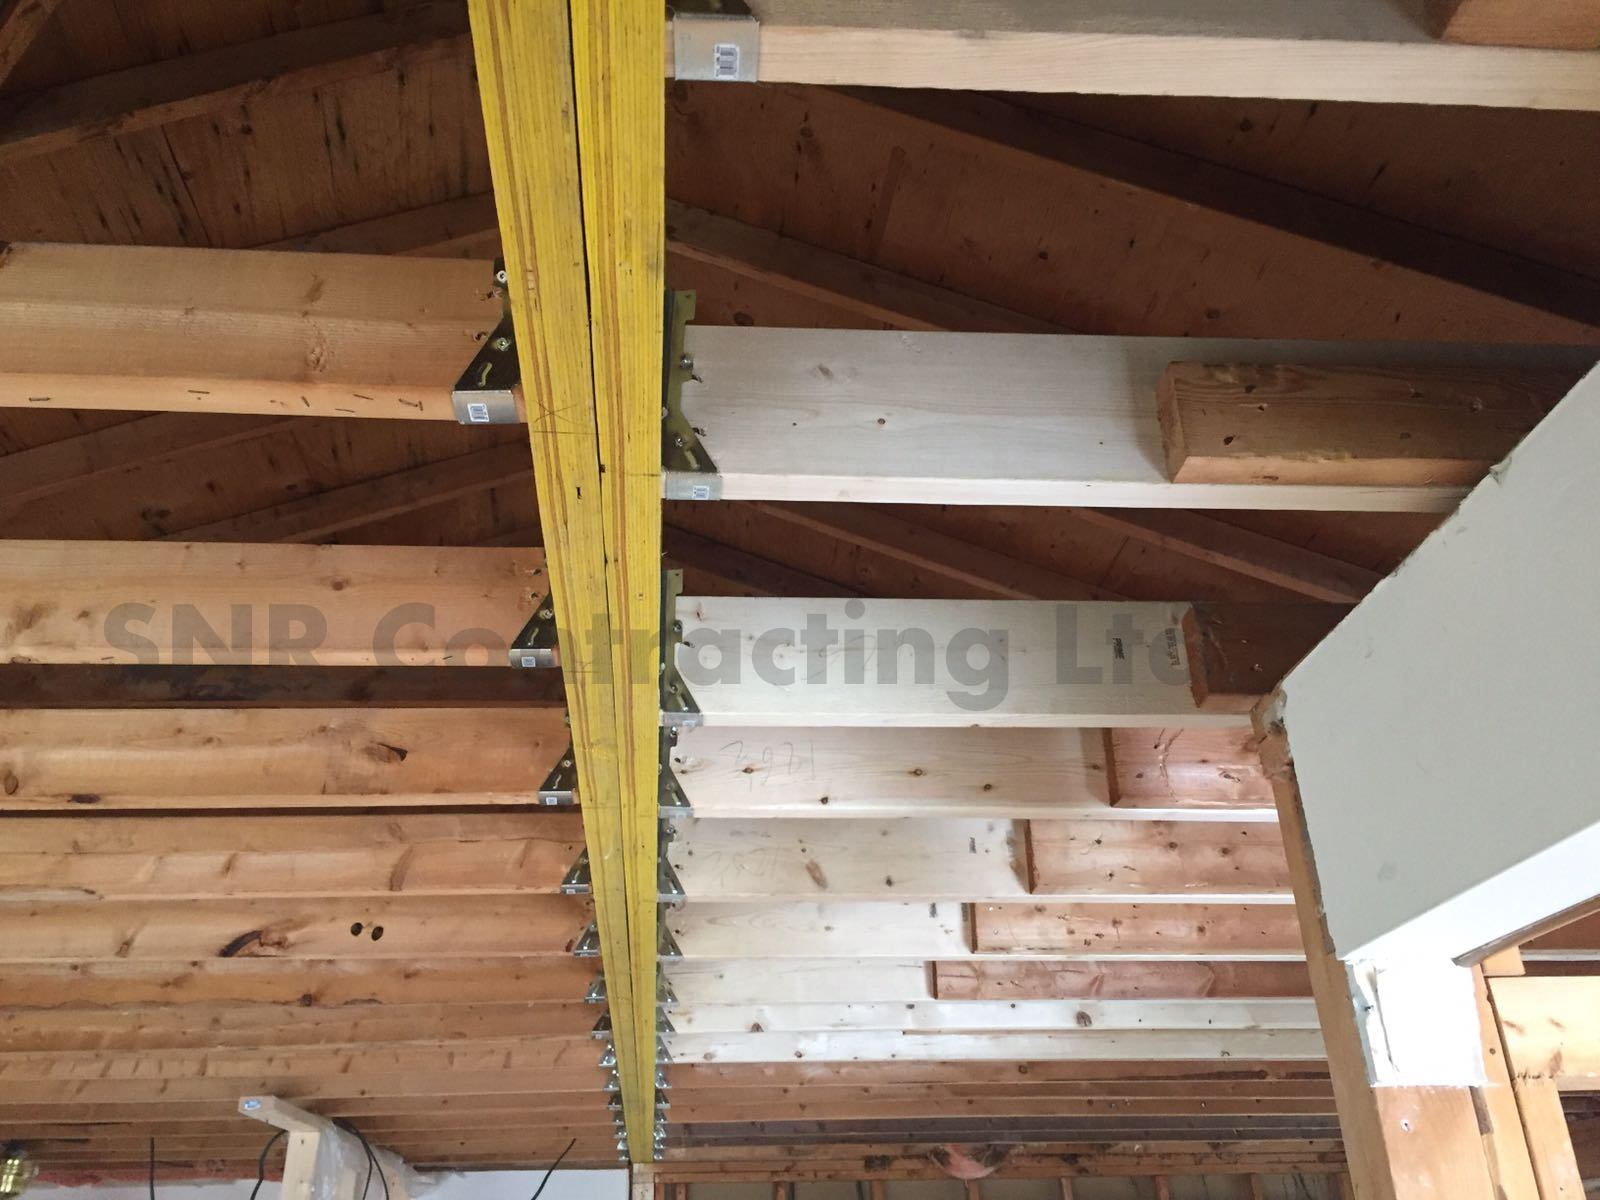 How to determine the load-bearing wall